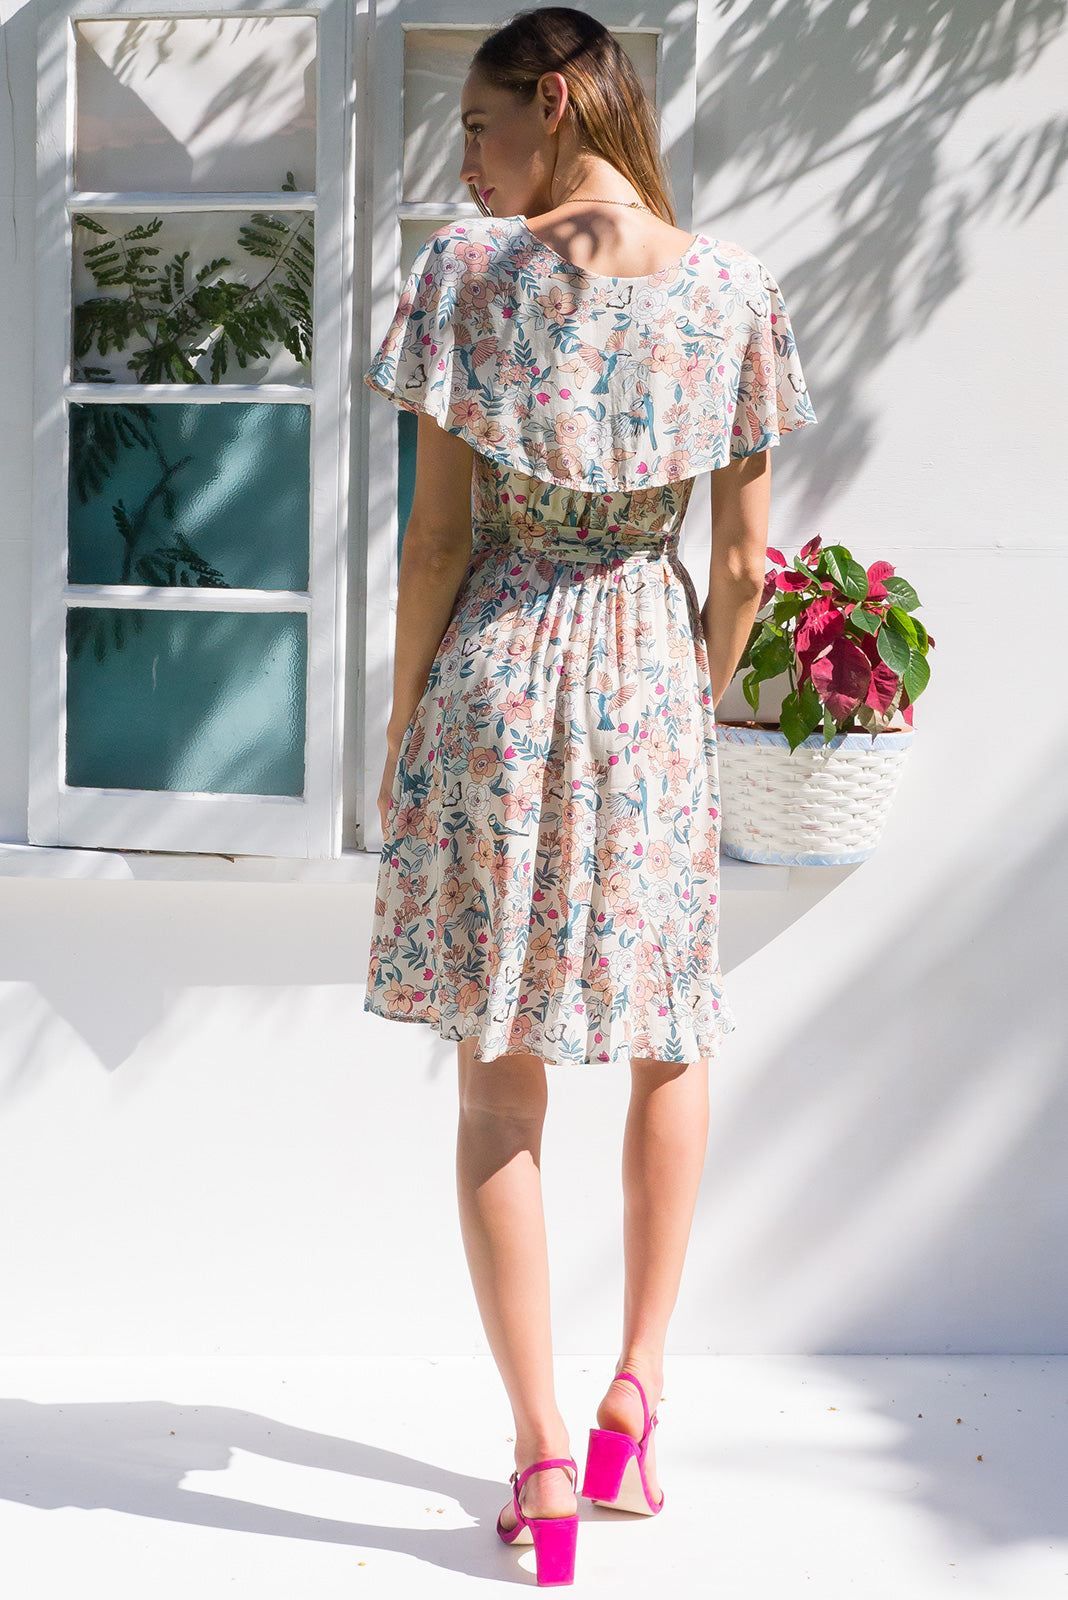 Rita Rio Feathers Cream Wrap Dress with a full frill around the neck and sleeve in a cream and pink bird print on rayon